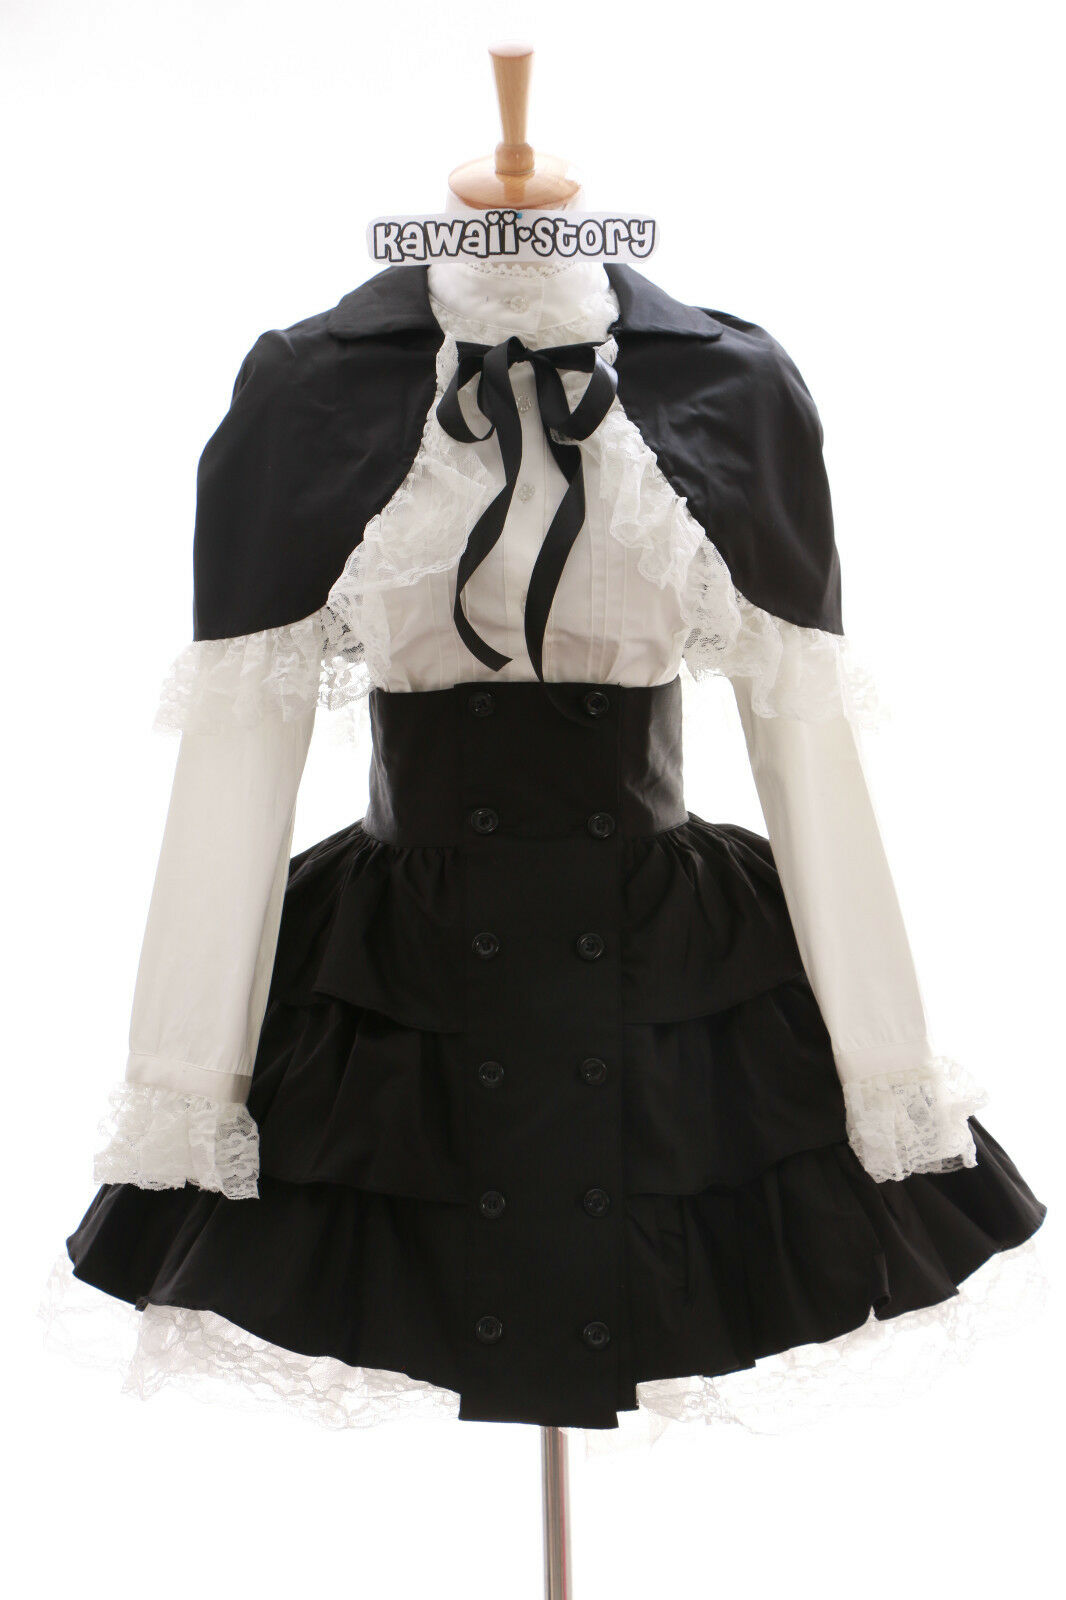 JL-574 schwarz Classic Gothic Lolita Cape Blause Rock Kostüm Kleid dress Cosplay